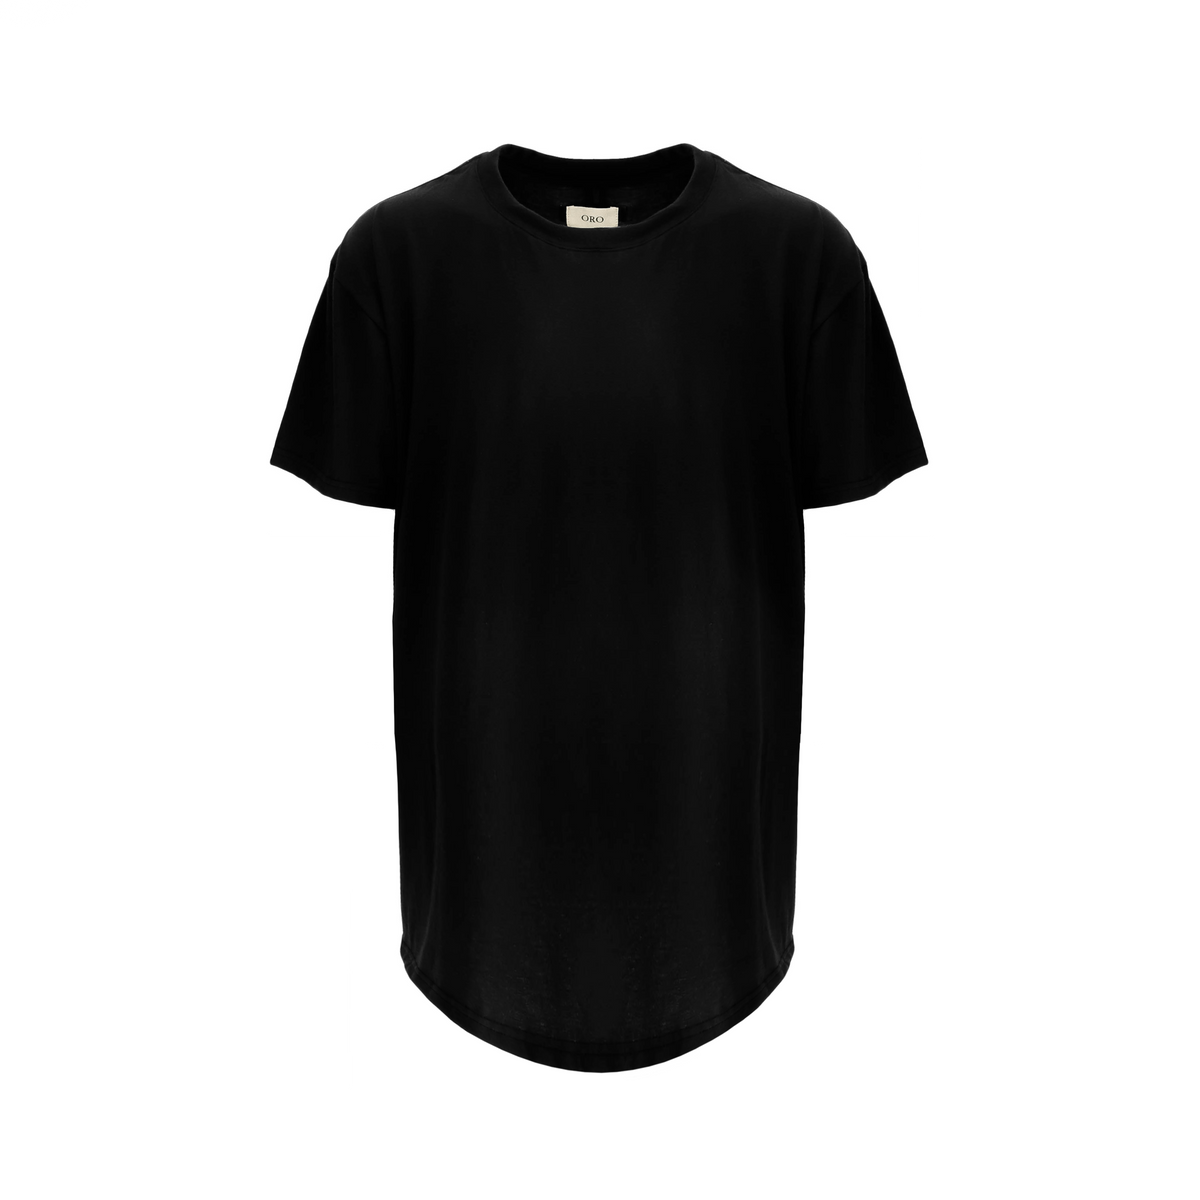 THE NOIR SCALLOP TEE